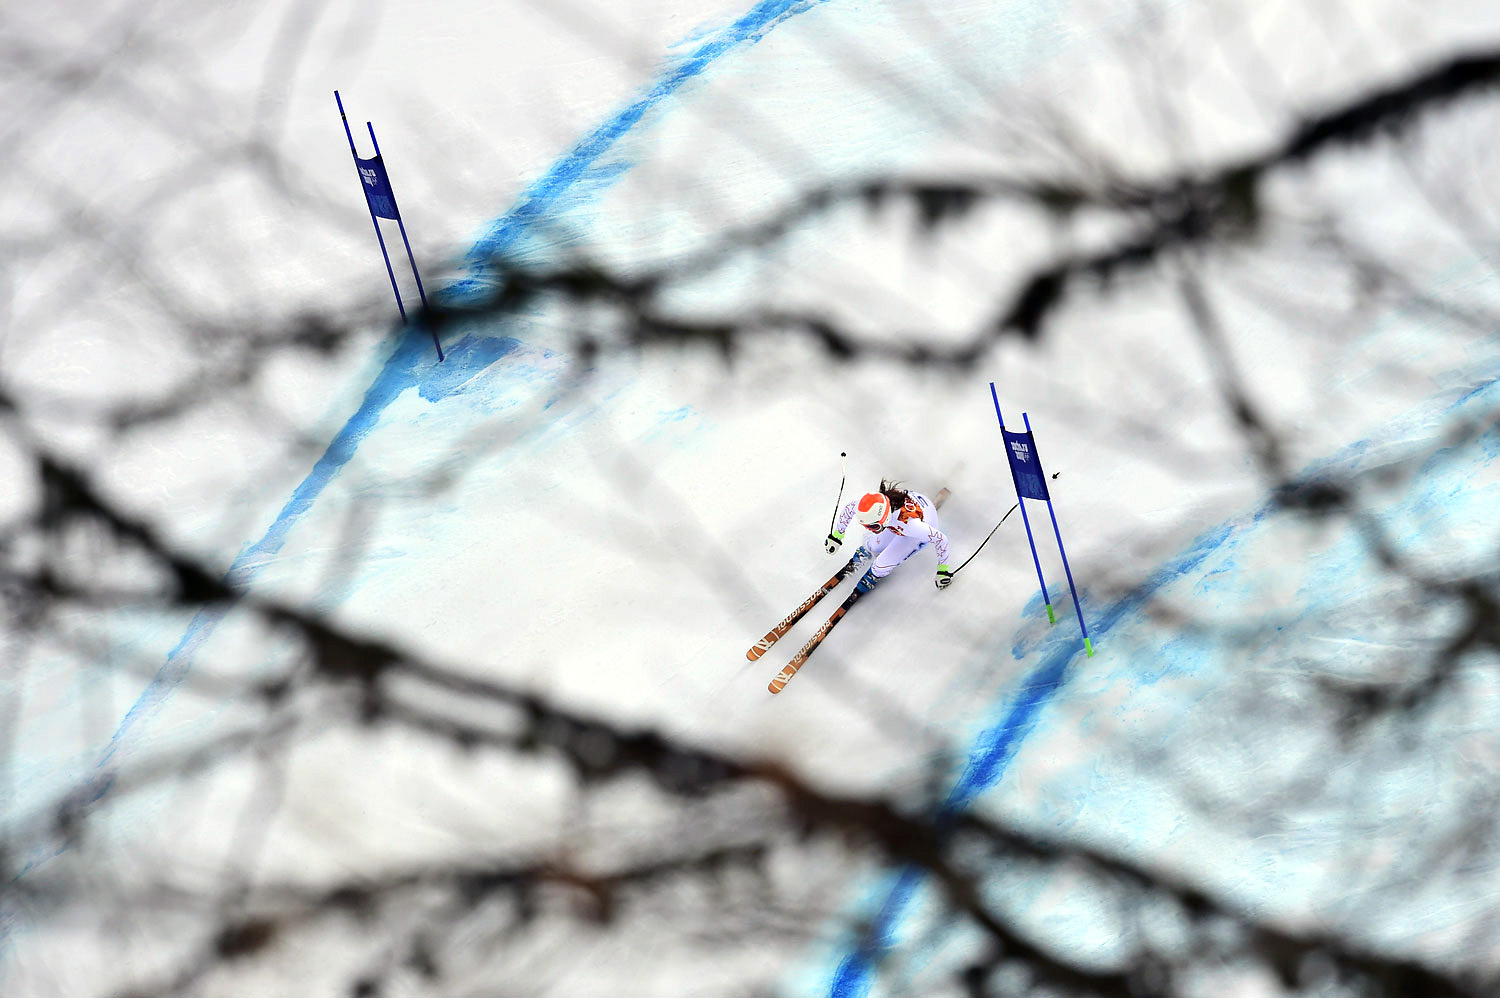 U.S. skier Leanne Smith competes during the Women's Alpine Skiing Super Combined Downhill at the Rosa Khutor Alpine Center.